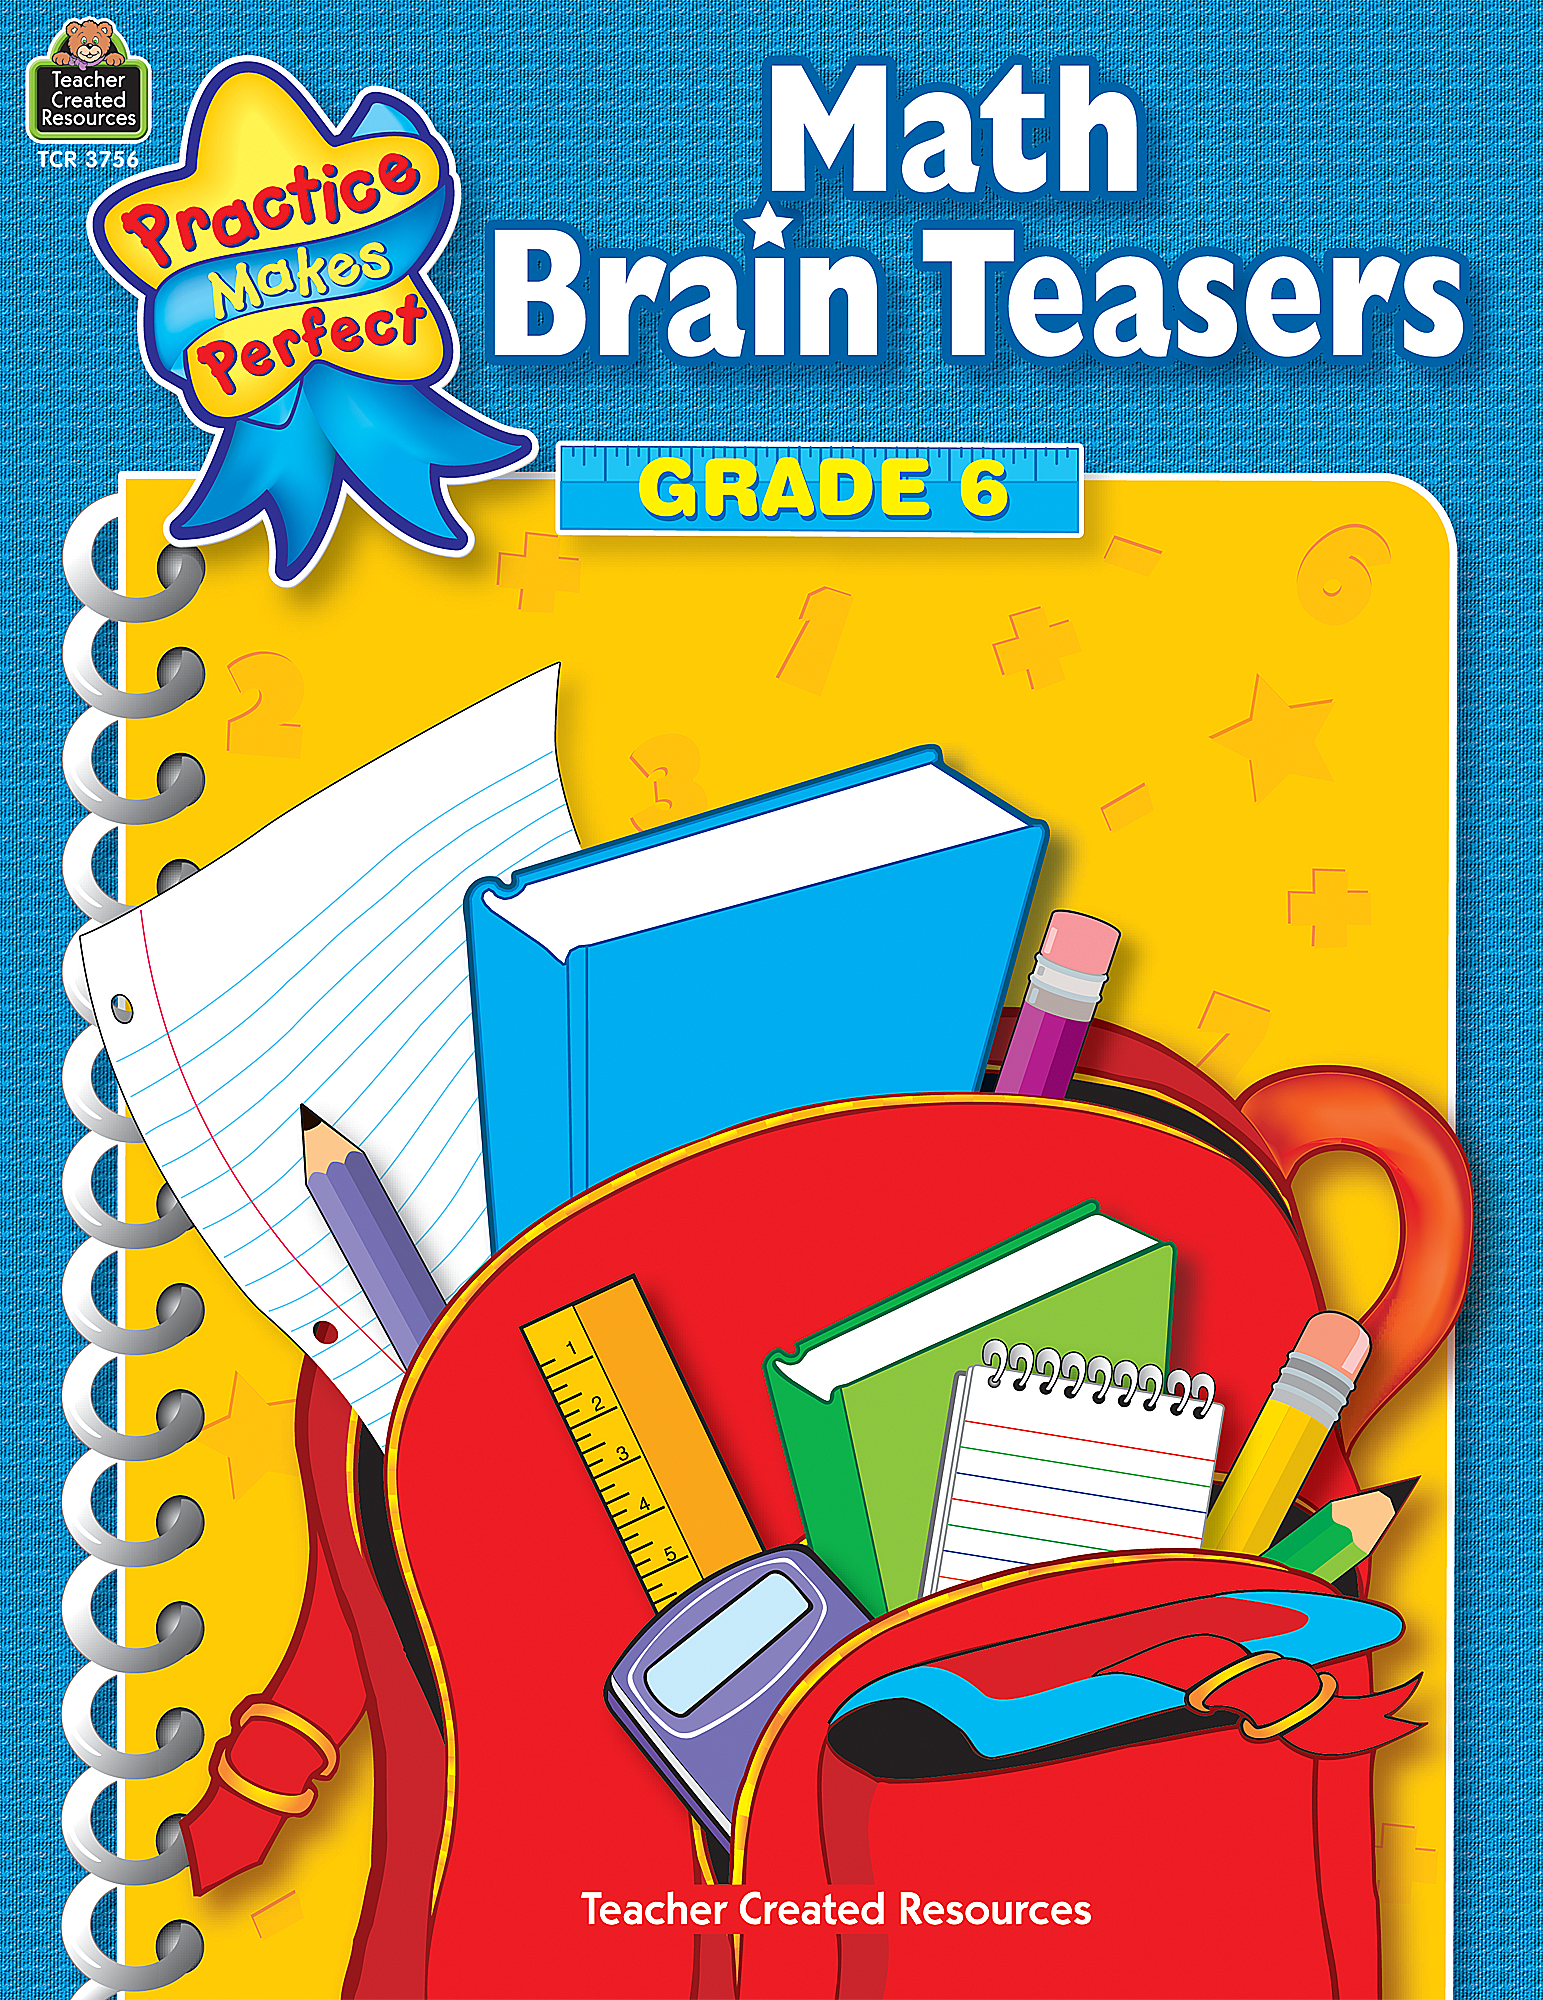 math brain teasers grade 6 tcr3756 teacher created resources. Black Bedroom Furniture Sets. Home Design Ideas